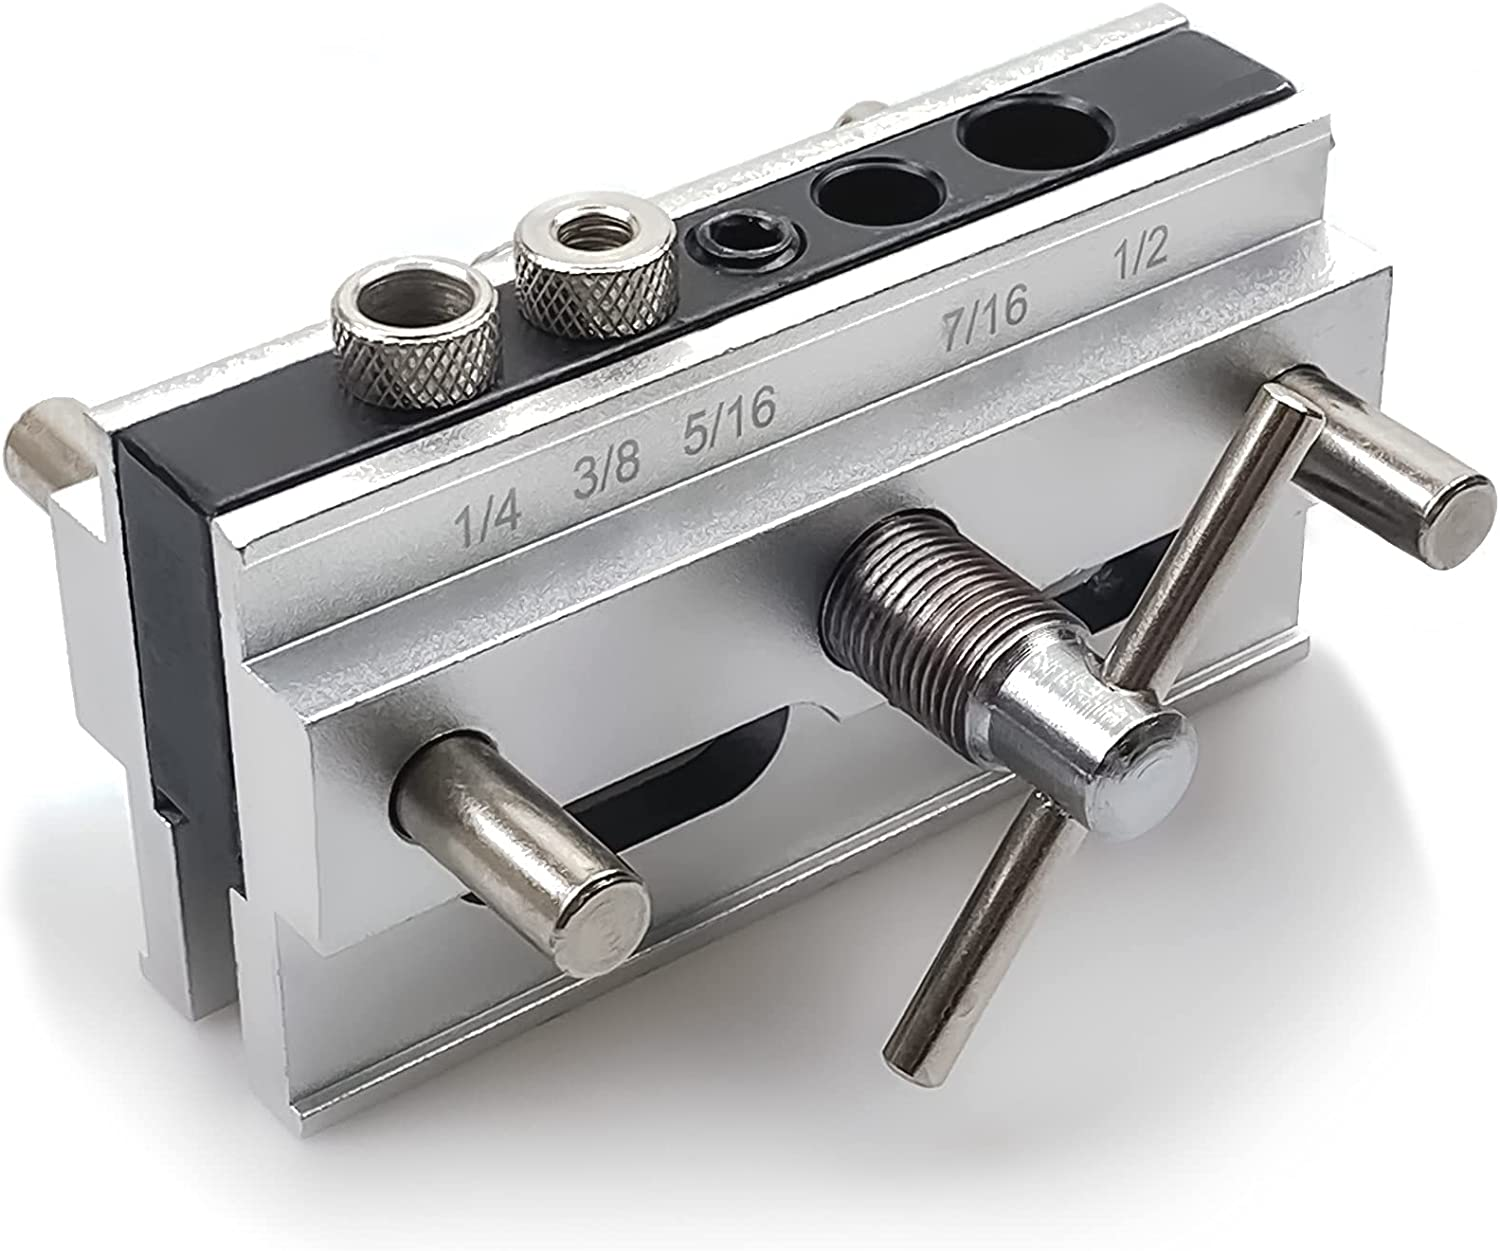 Self Centering Doweling Jig with 6 Bushings, Step Drill Guide Bushings Set for Professional or Hobbyist Woodworker Furniture Business, Wood Dowel Jig Kit Woodworking Drilling Hole locator Tools